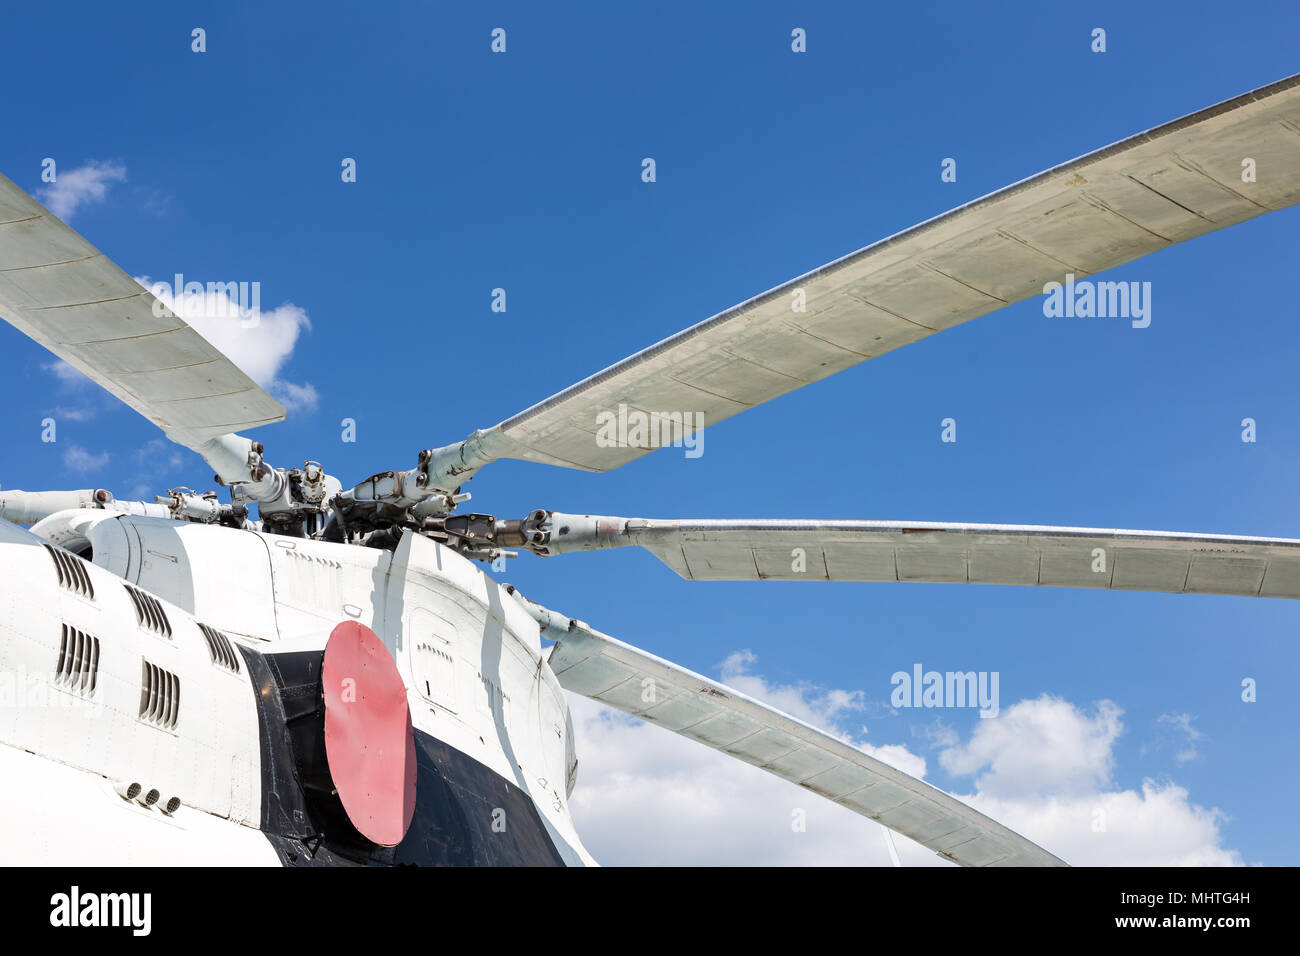 Close-up  blade rotors of big cargo-passenger helicopter against blue sky on background - Stock Image